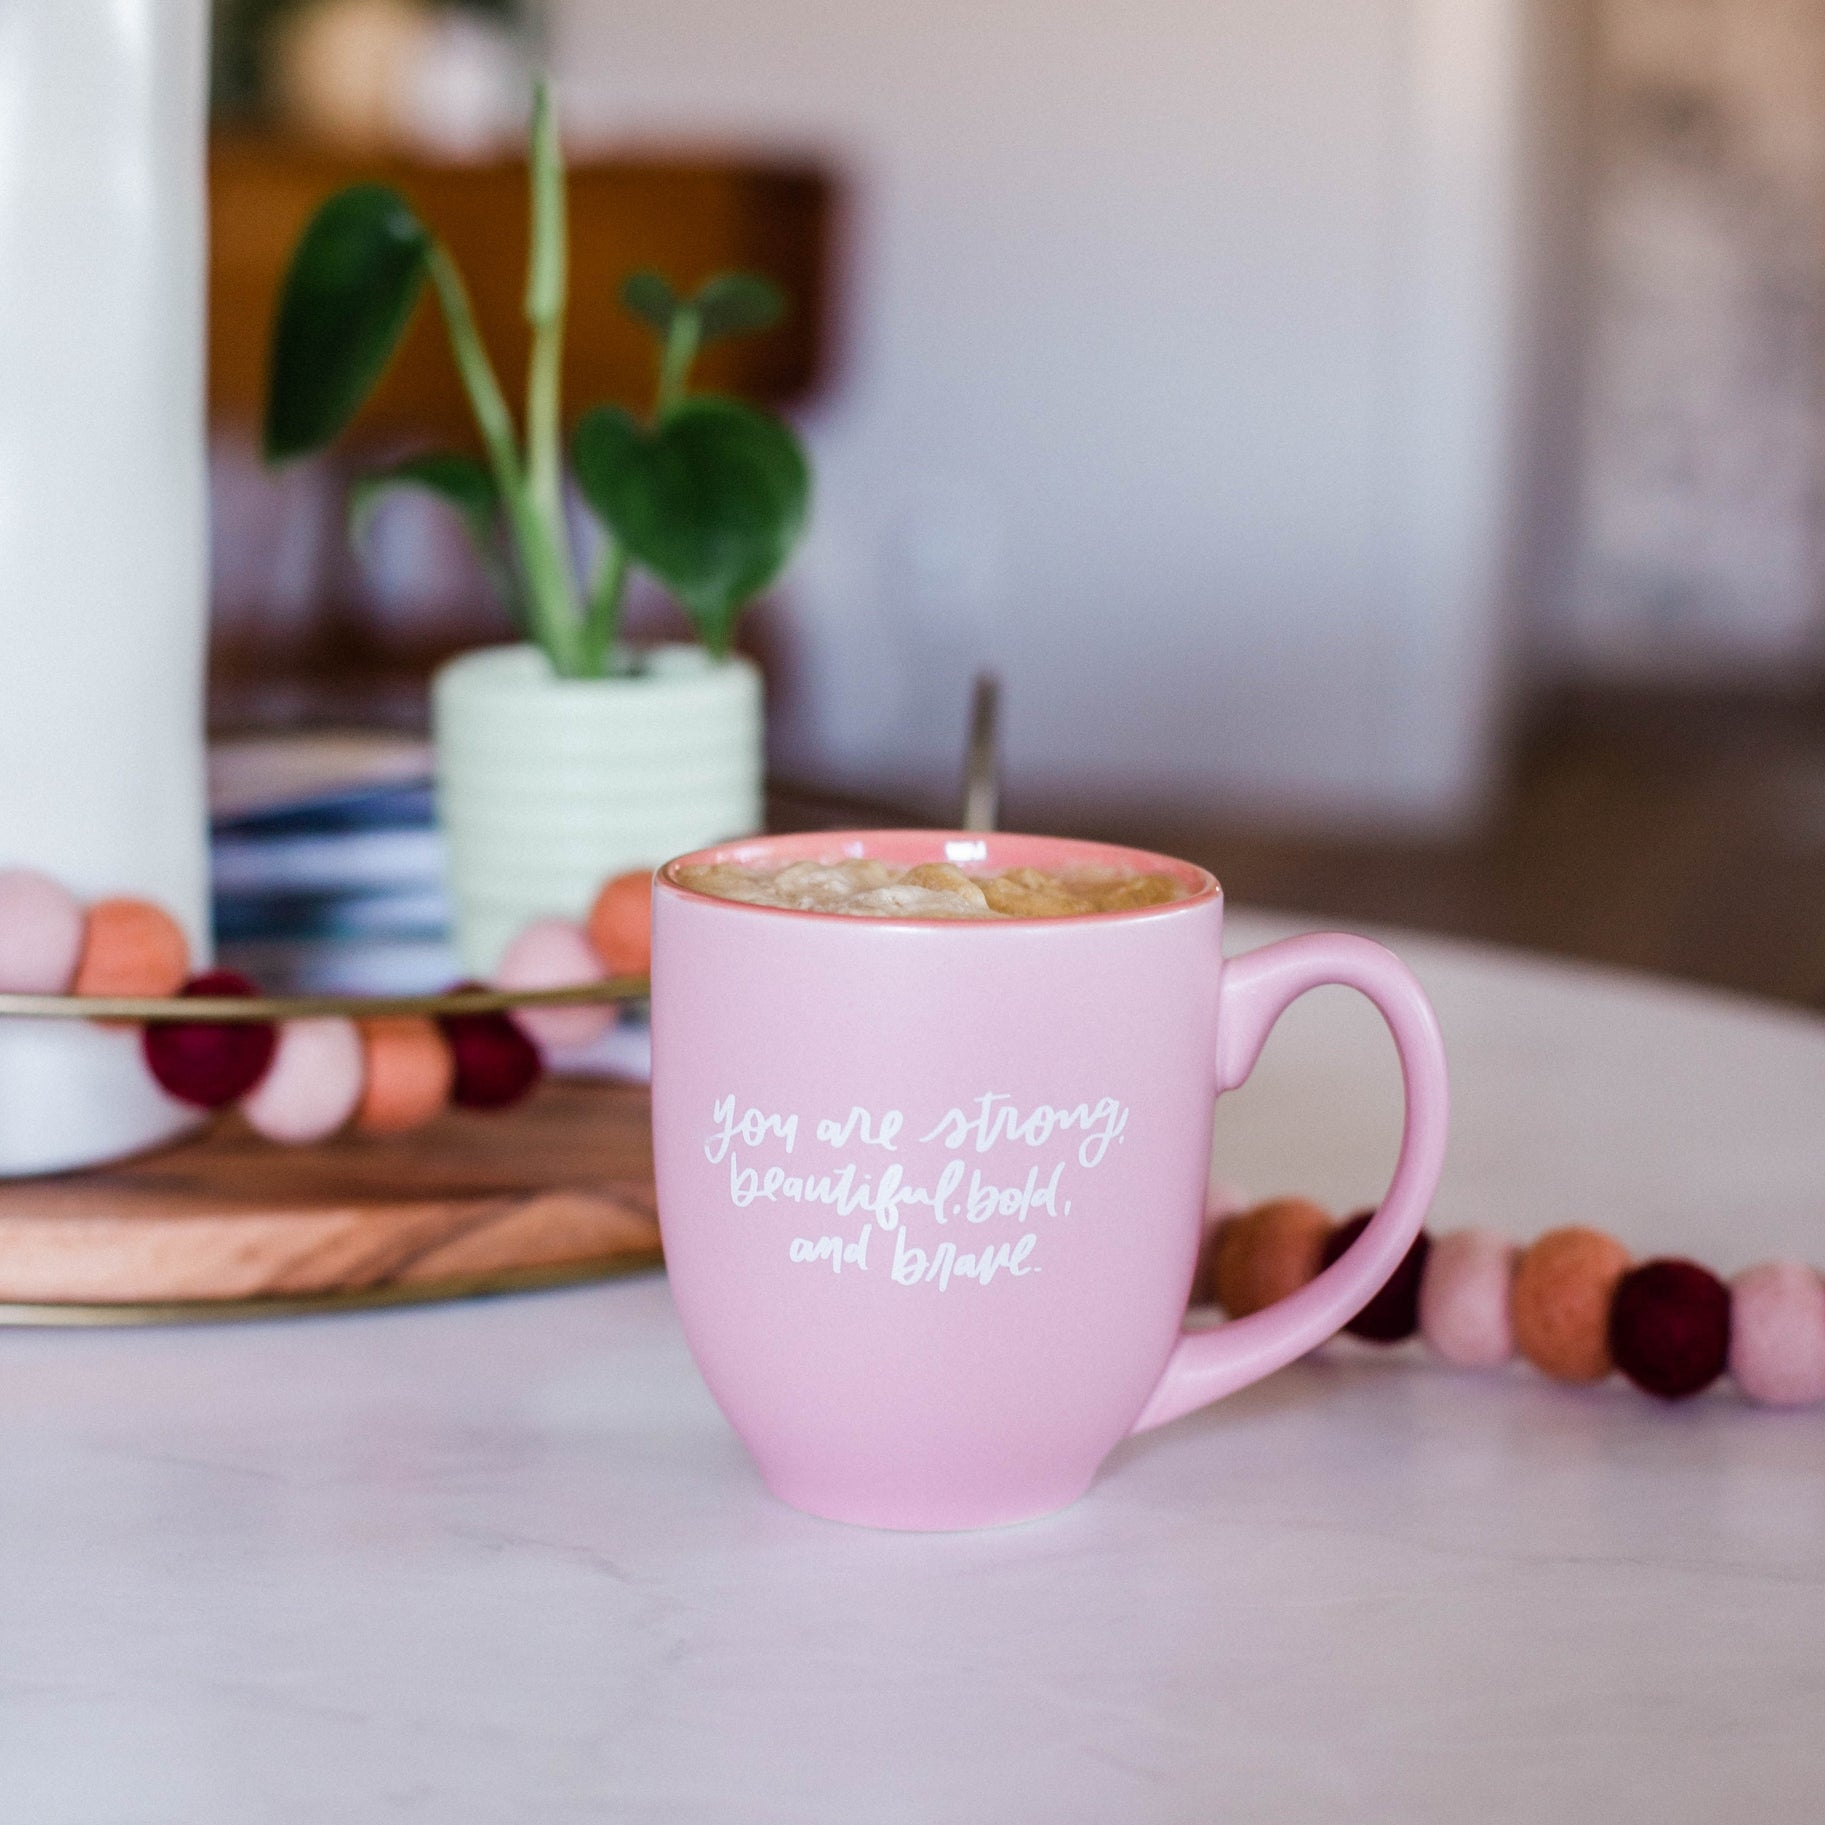 "Pink ceramic mug filled with coffee sitting on a white marble countertop surrounded by pink garland, greenery, and home decor. The mug has white cursive script that reads ""you are strong, beautiful, bold, and brave"""